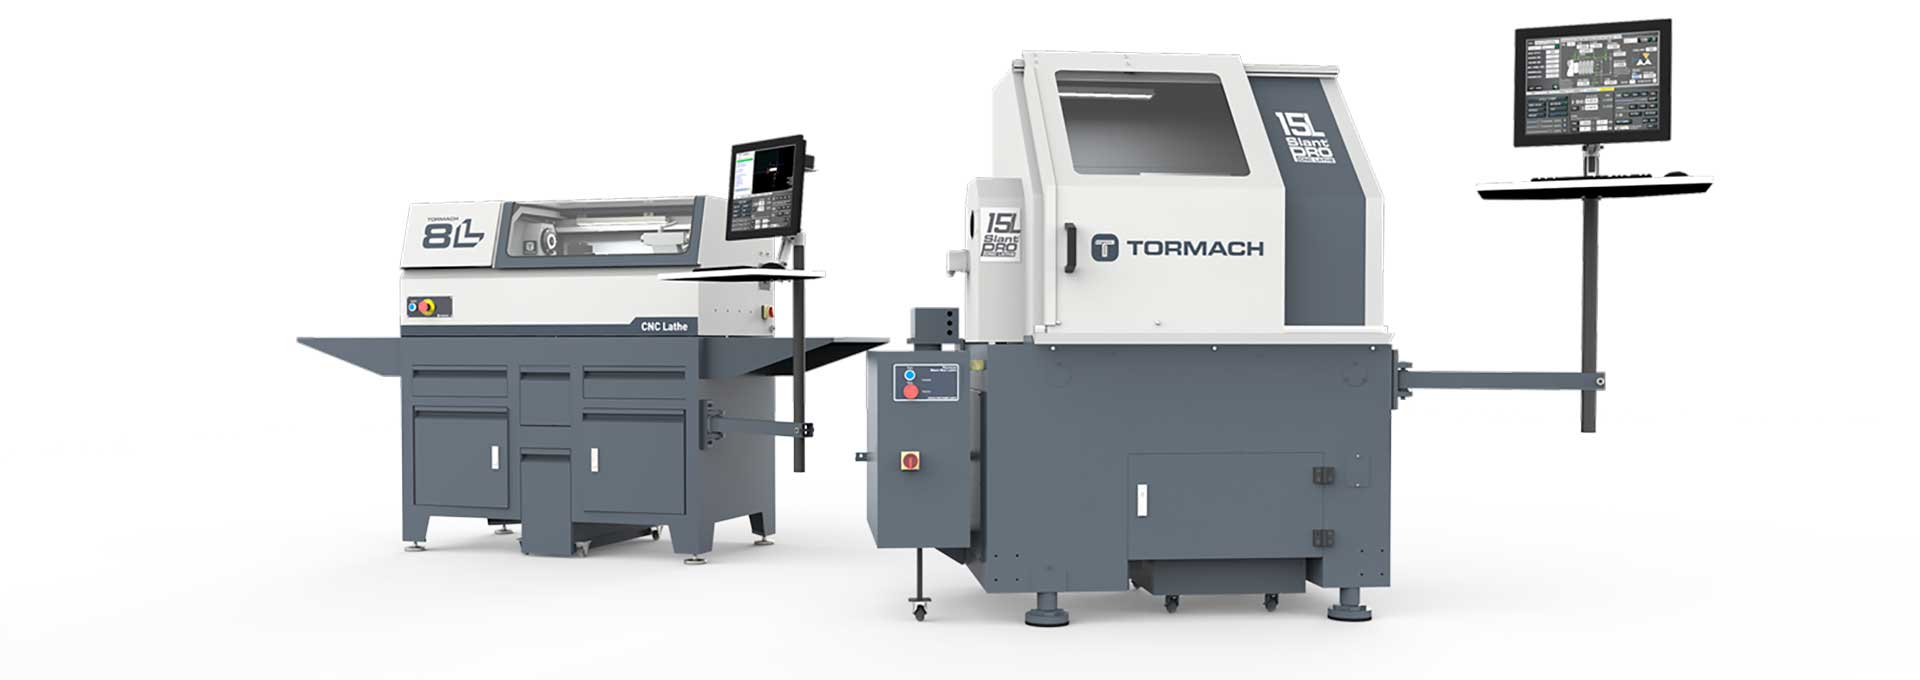 Tormach's Lathe Line-up including 15L Slant-PRO and 8L CNC lathe